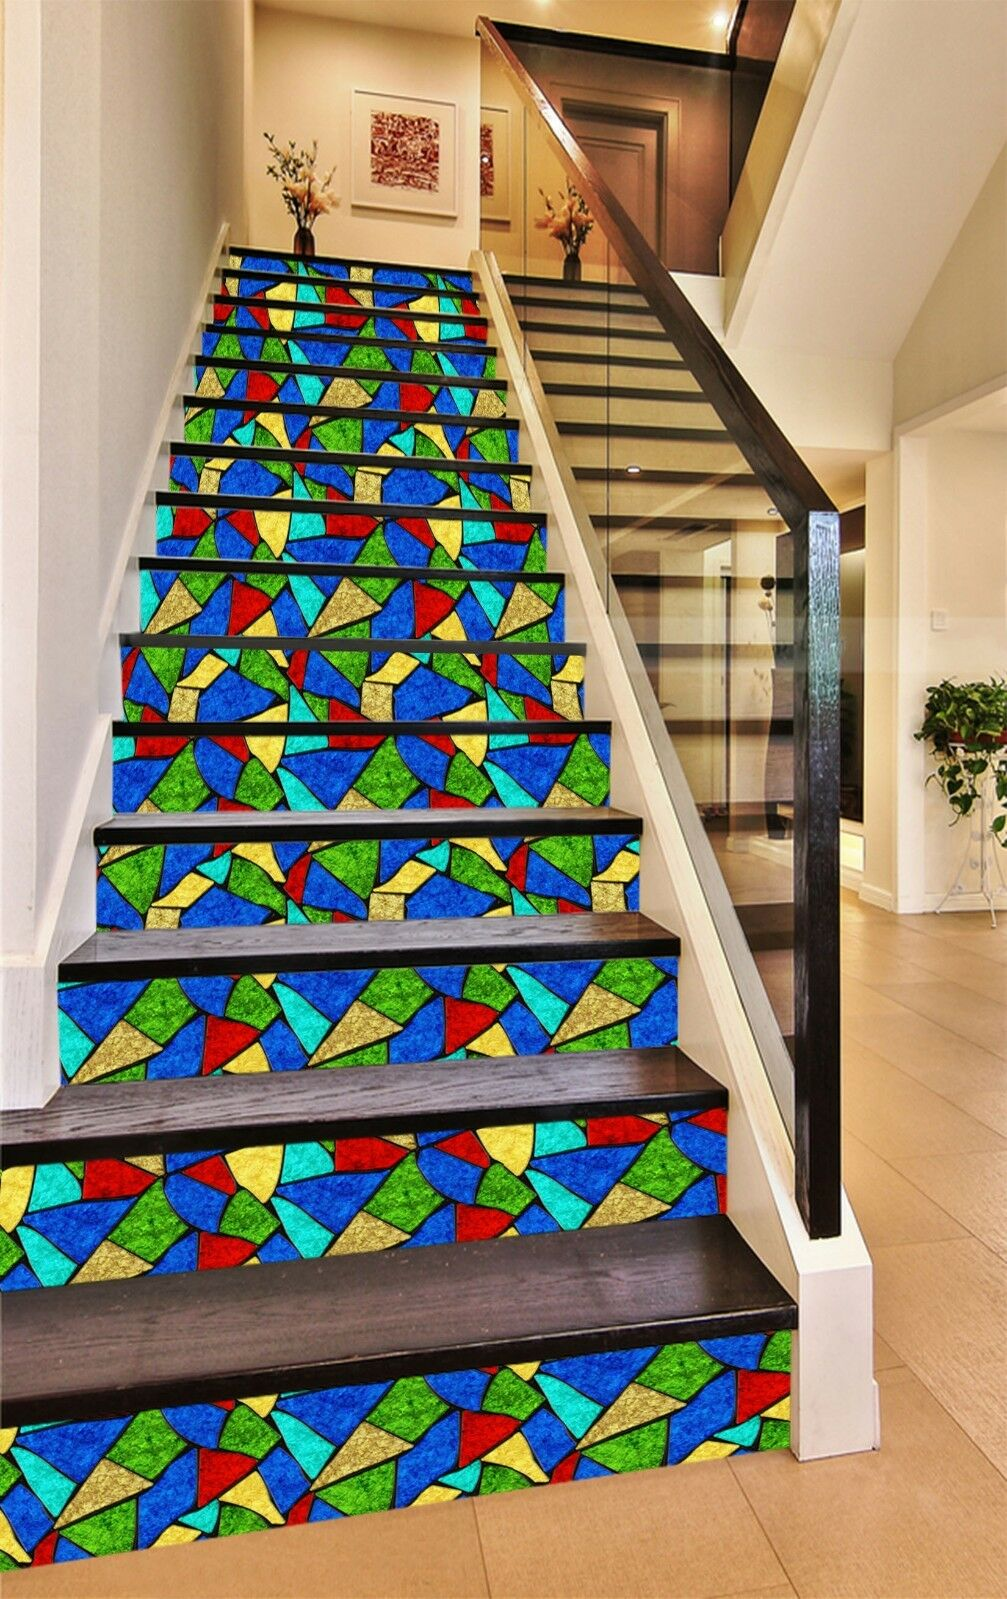 3D color Shard Stair Risers Decoration Photo Mural Vinyl Decal Wallpaper AU